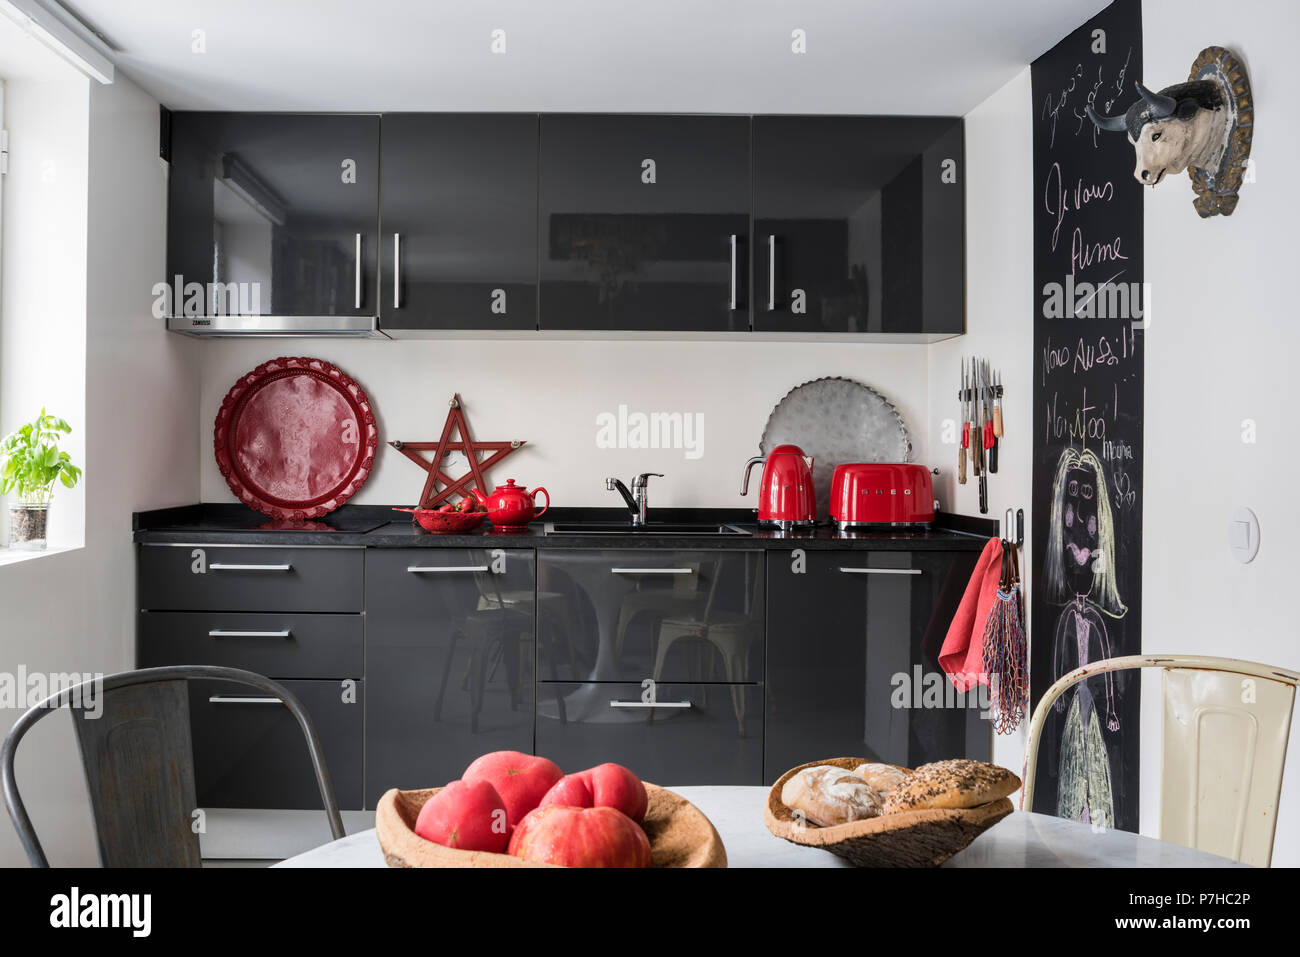 Dark Grey Flat Fronted Kitchen Units In Modern Kitchen With Vintage Tolix Metal Dining Chairs Stock Photo Alamy